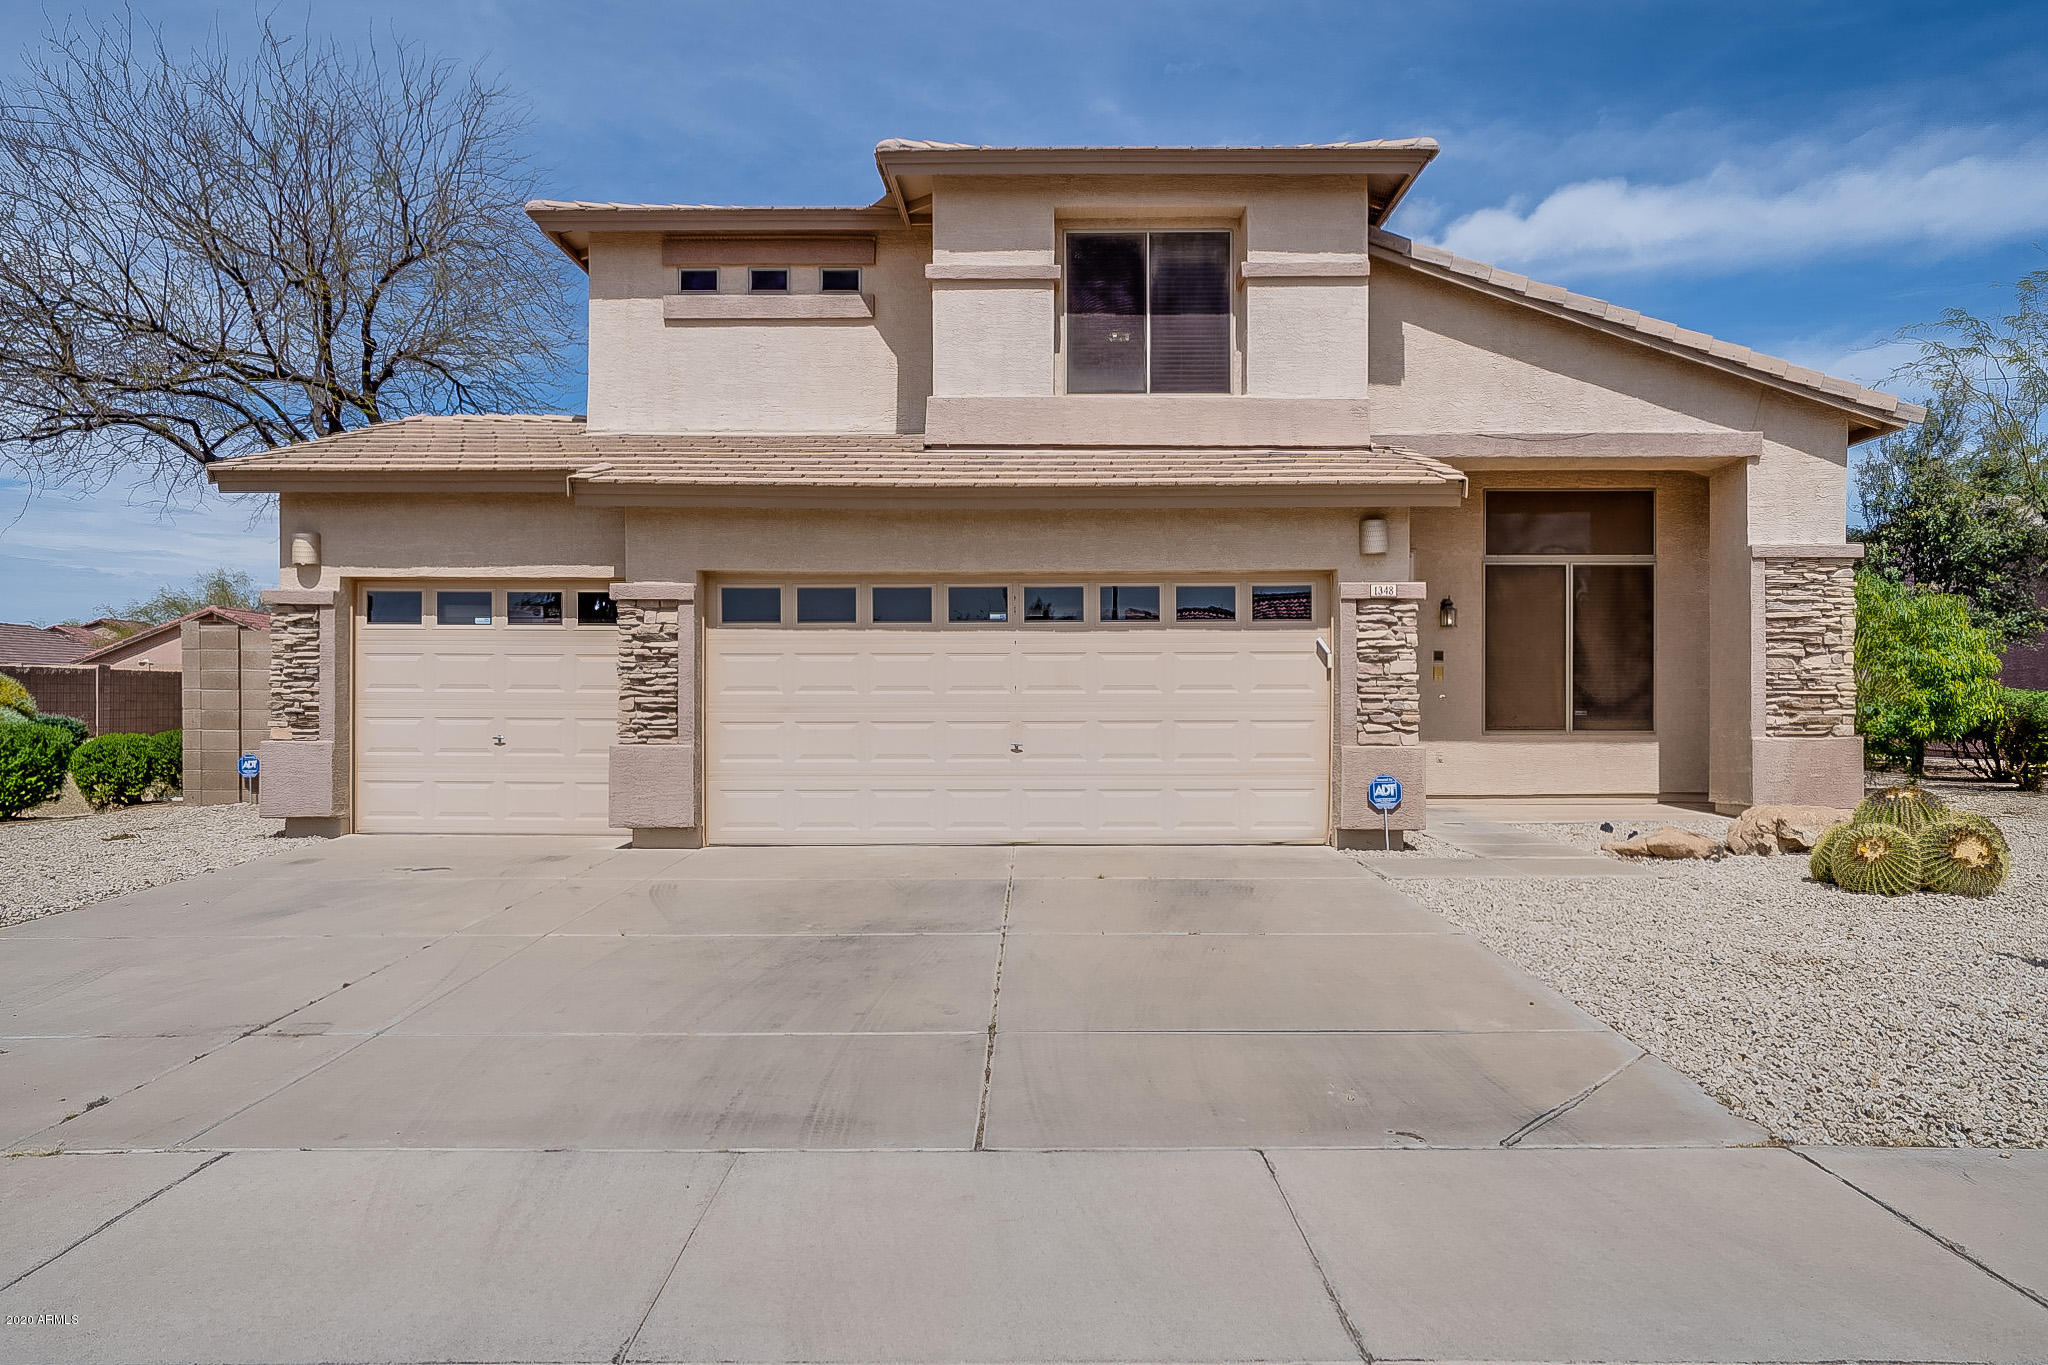 Photo of 1348 E 9th Place, Casa Grande, AZ 85122 (MLS # 6057402)